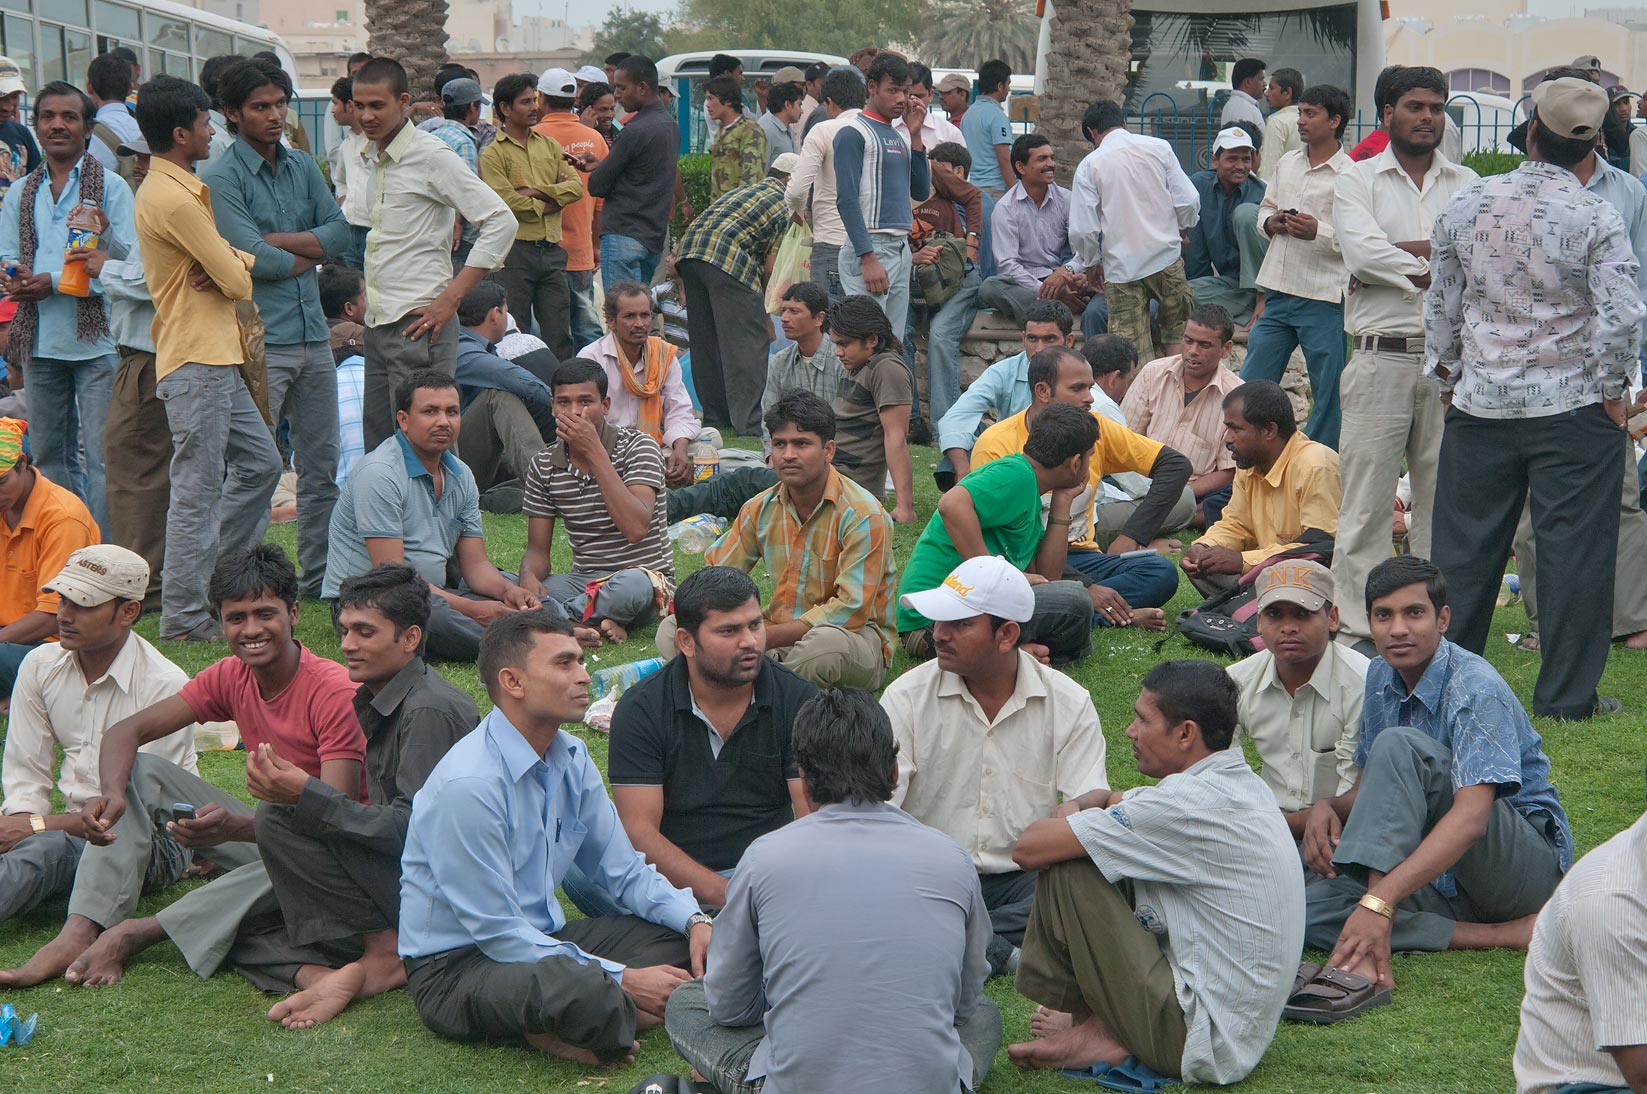 Migrant workers socializing on a lawn on Friday...Bus Station Al Ghanim. Doha, Qatar